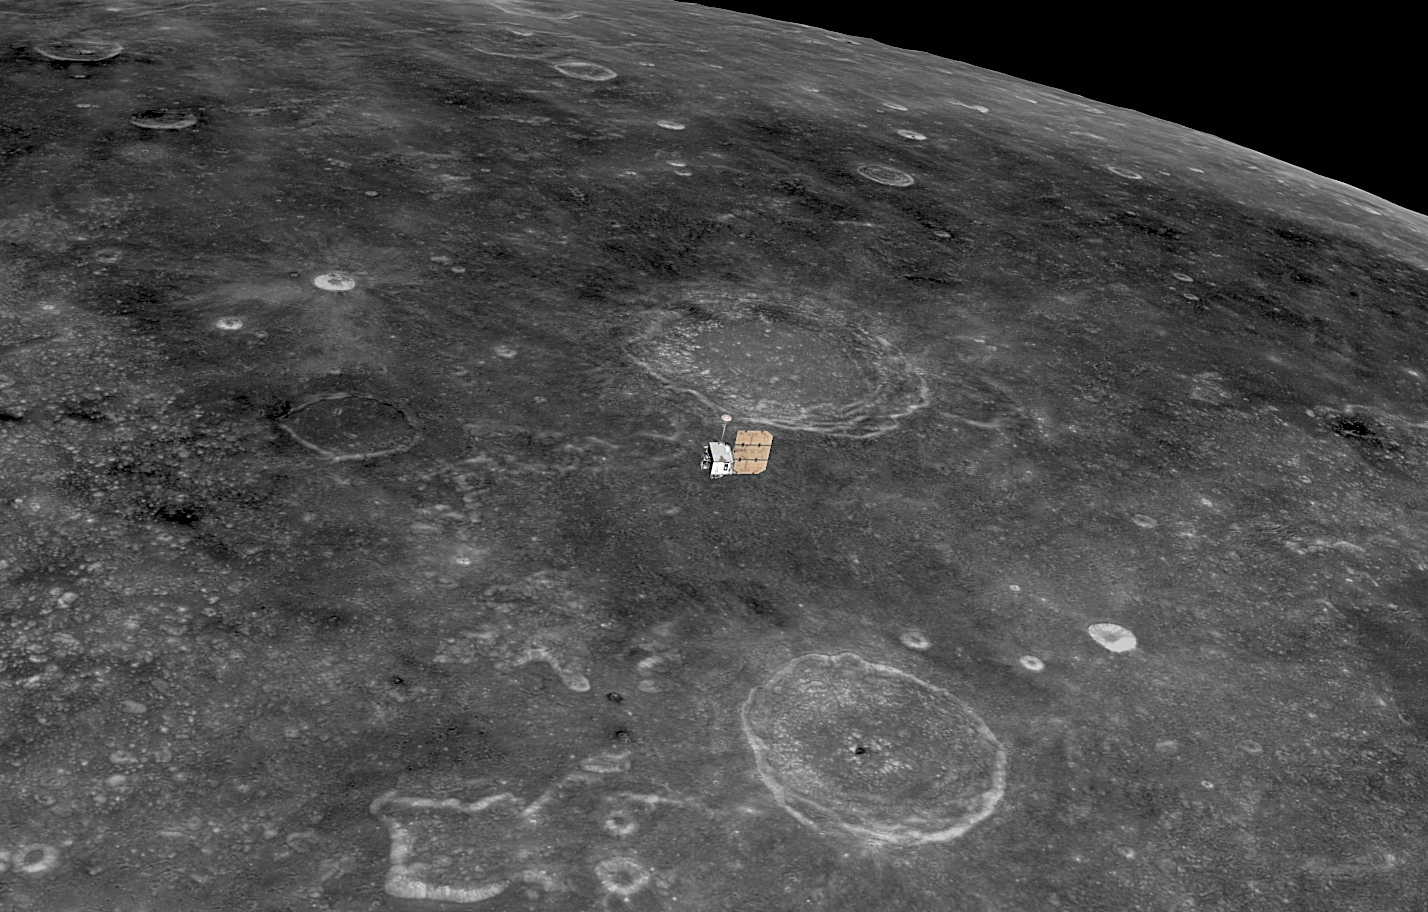 Just 3.9 × 2.7 × 2.6metres in size at launch on 18June 2009, NASA's Lunar Reconnaissance Orbiter appears dwarfed by the Moon that it has been mapping ever since. Image credit: NASA/GSFC/Arizona State University/Laura Davis.